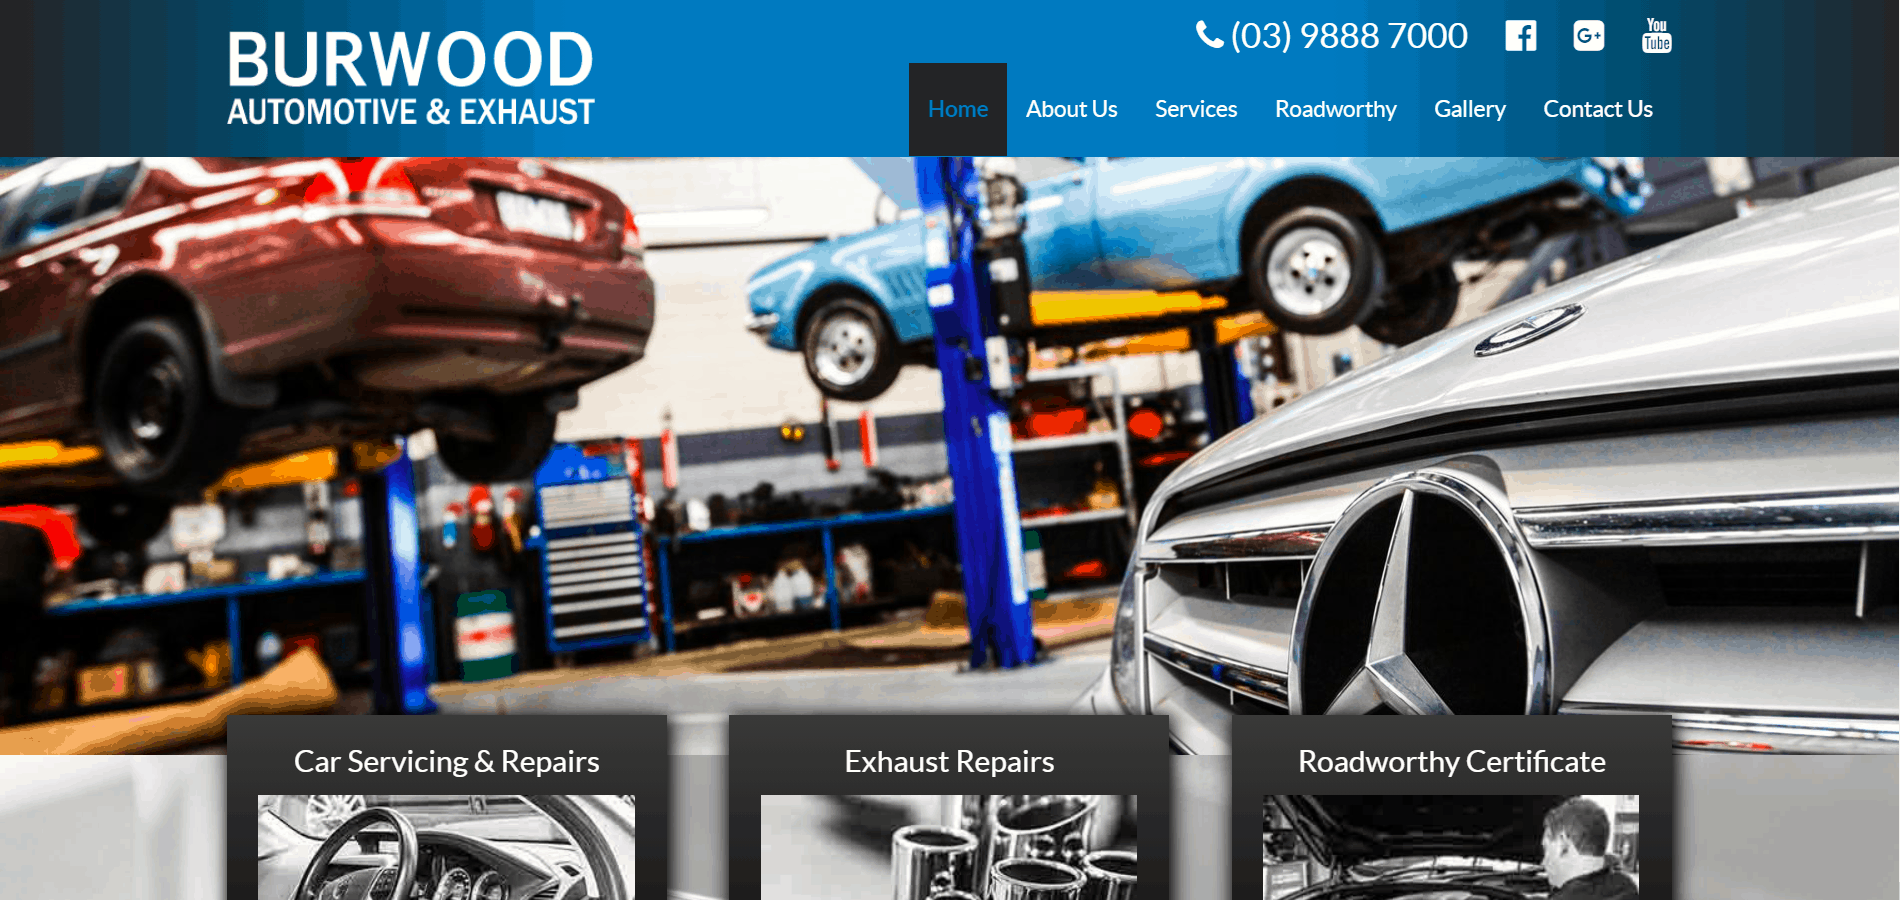 Burwood Automotive & Exhaust